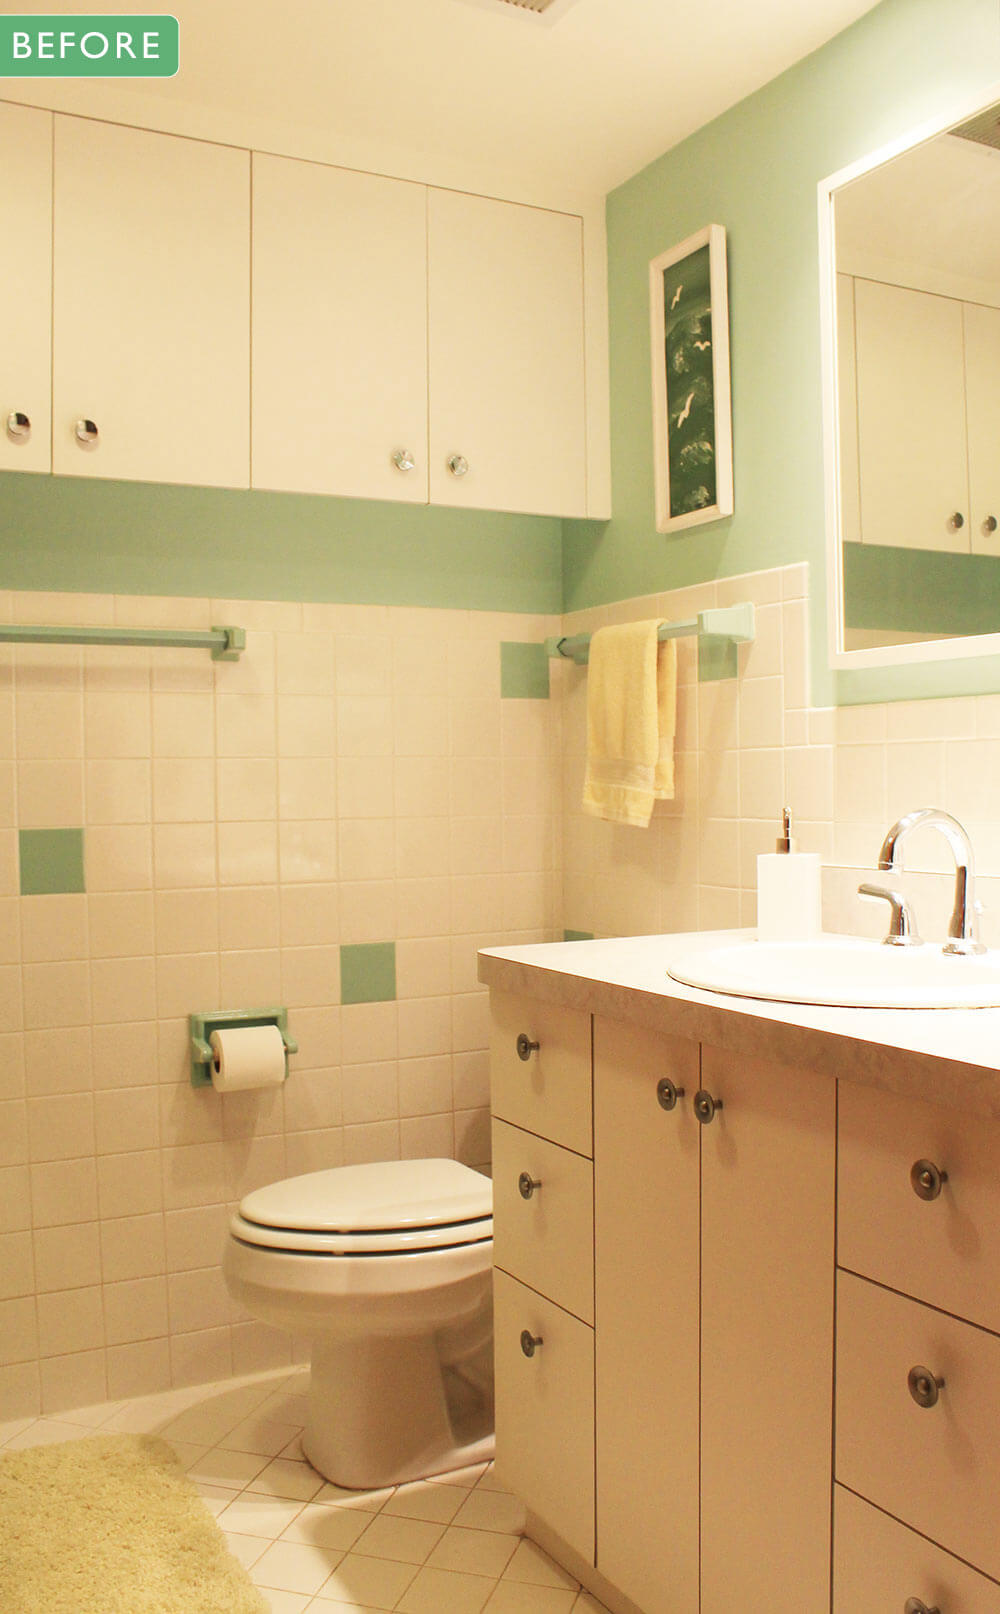 kate's 1960s green bathroom remodel 'lite' - before and after